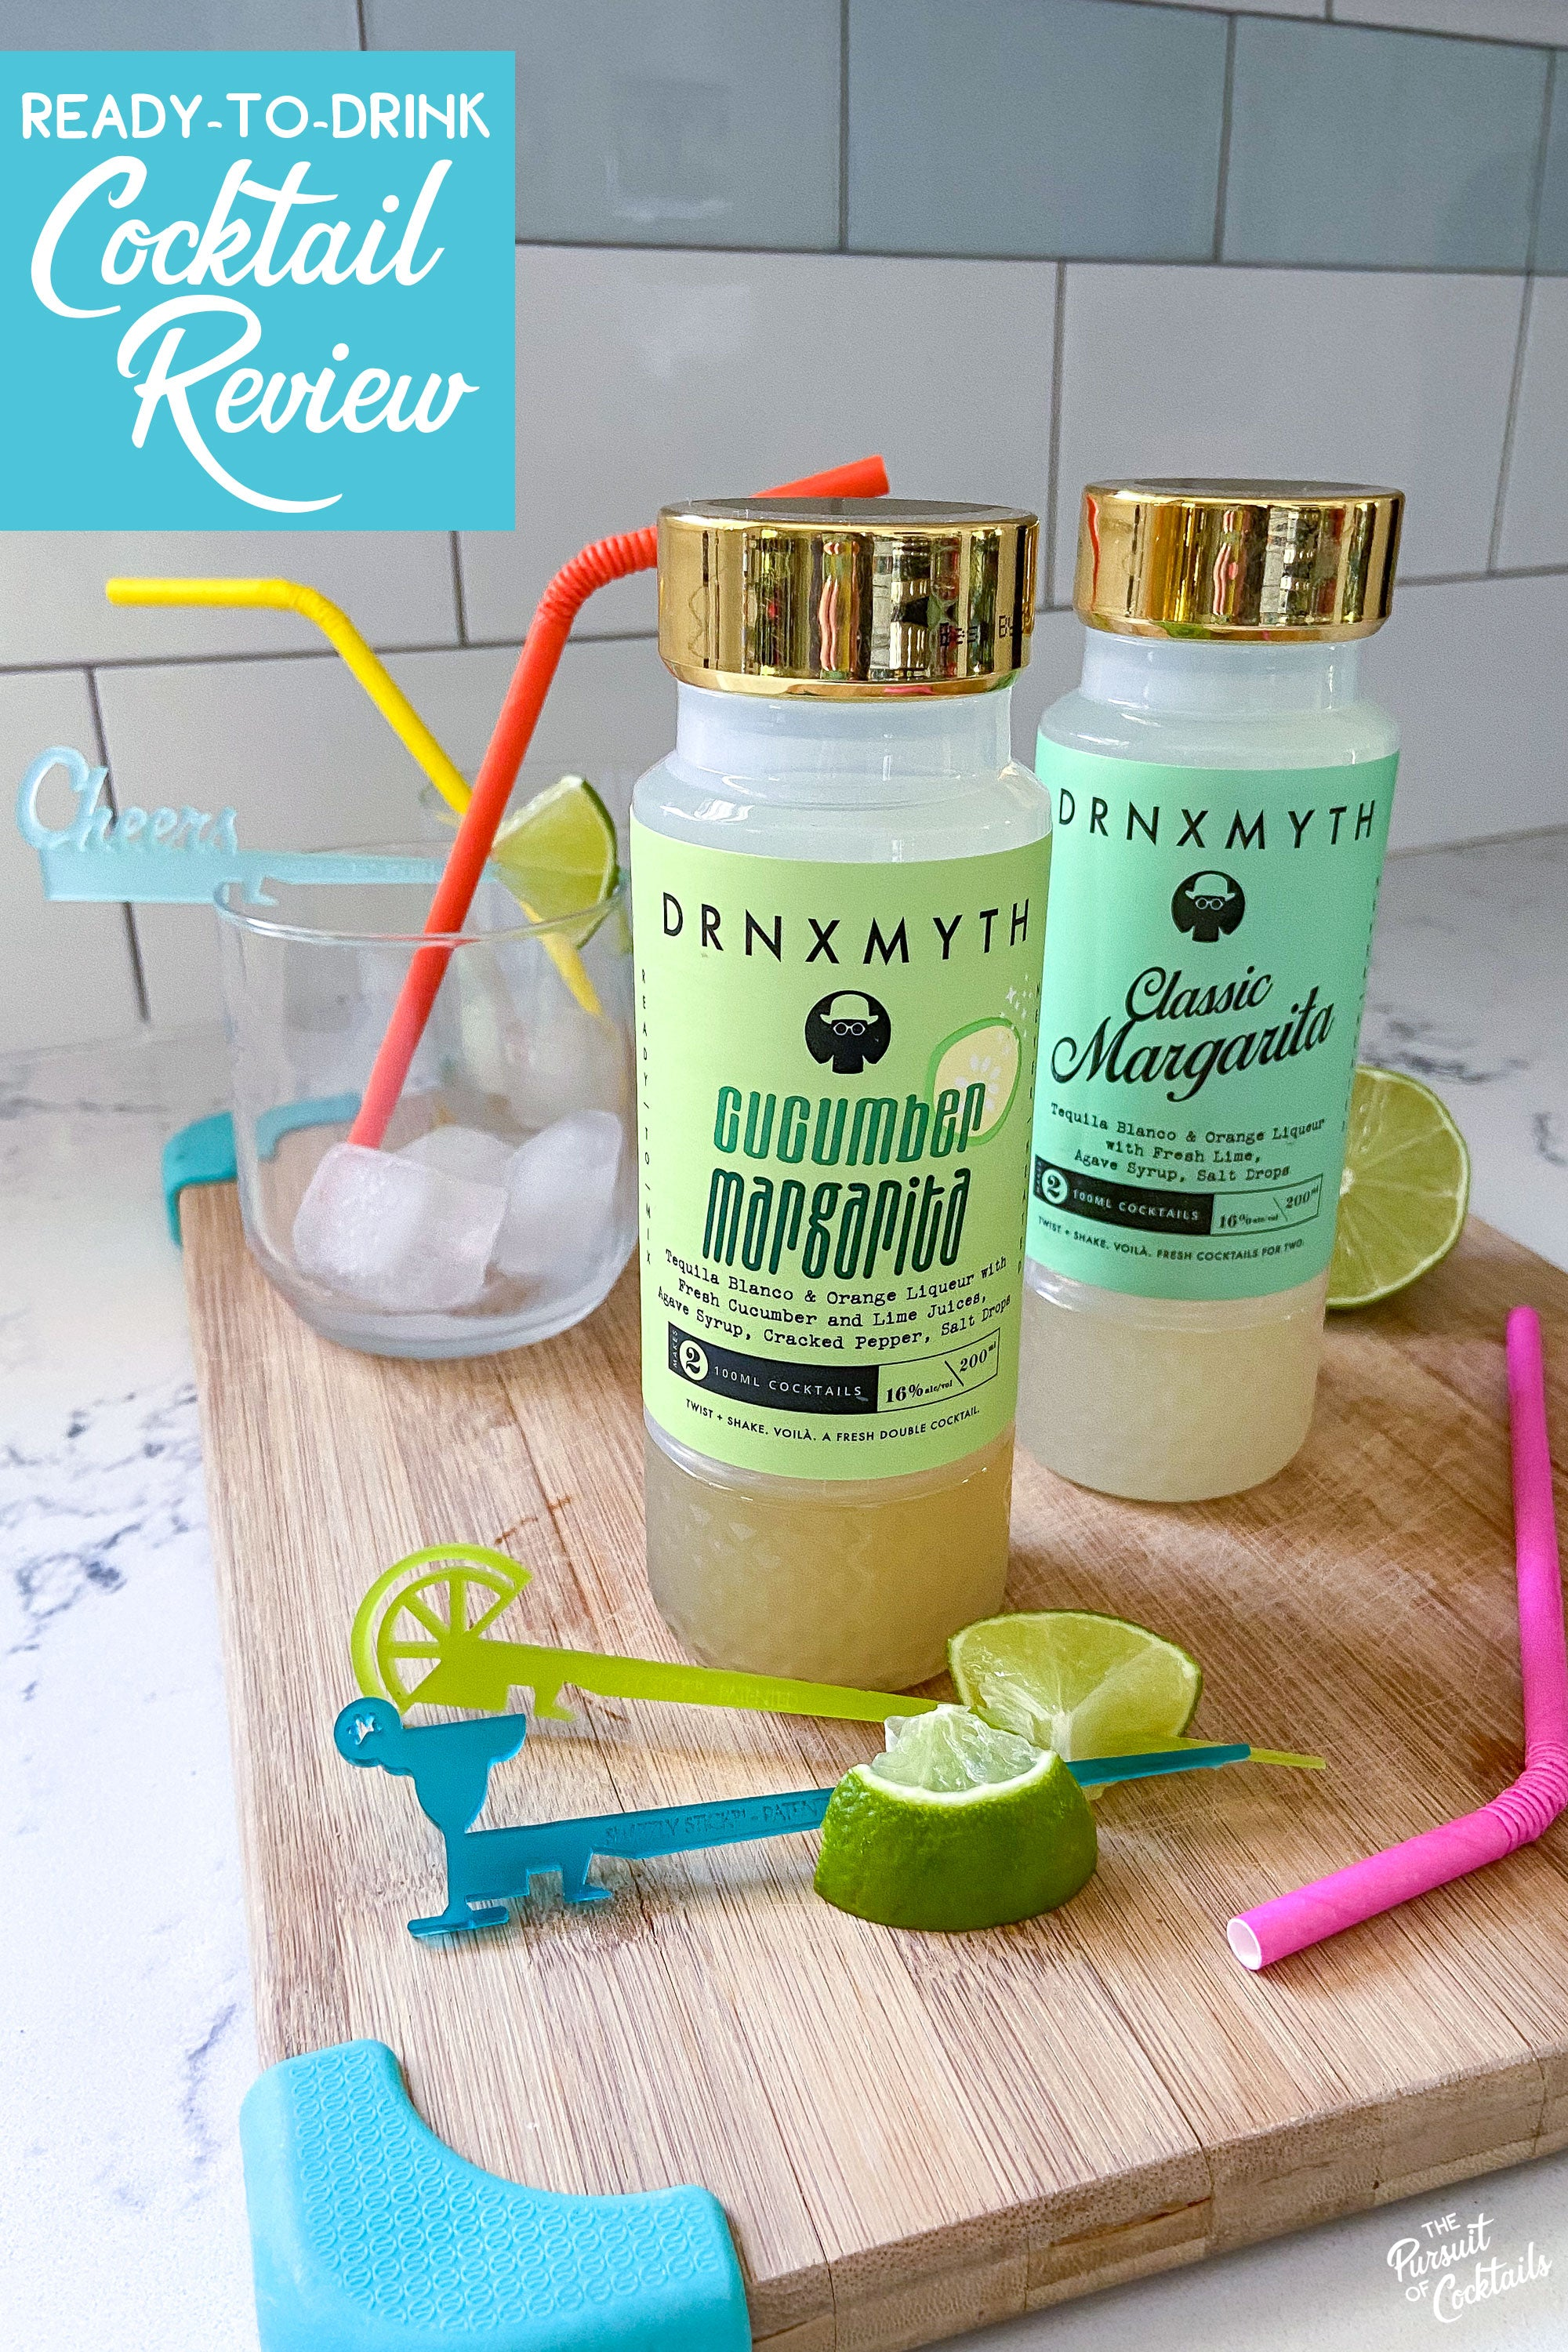 Drnxmyth Classic Margarita and Cucumber Margarita ready-to-drink cocktails reviewed by The Pursuit of Cocktails